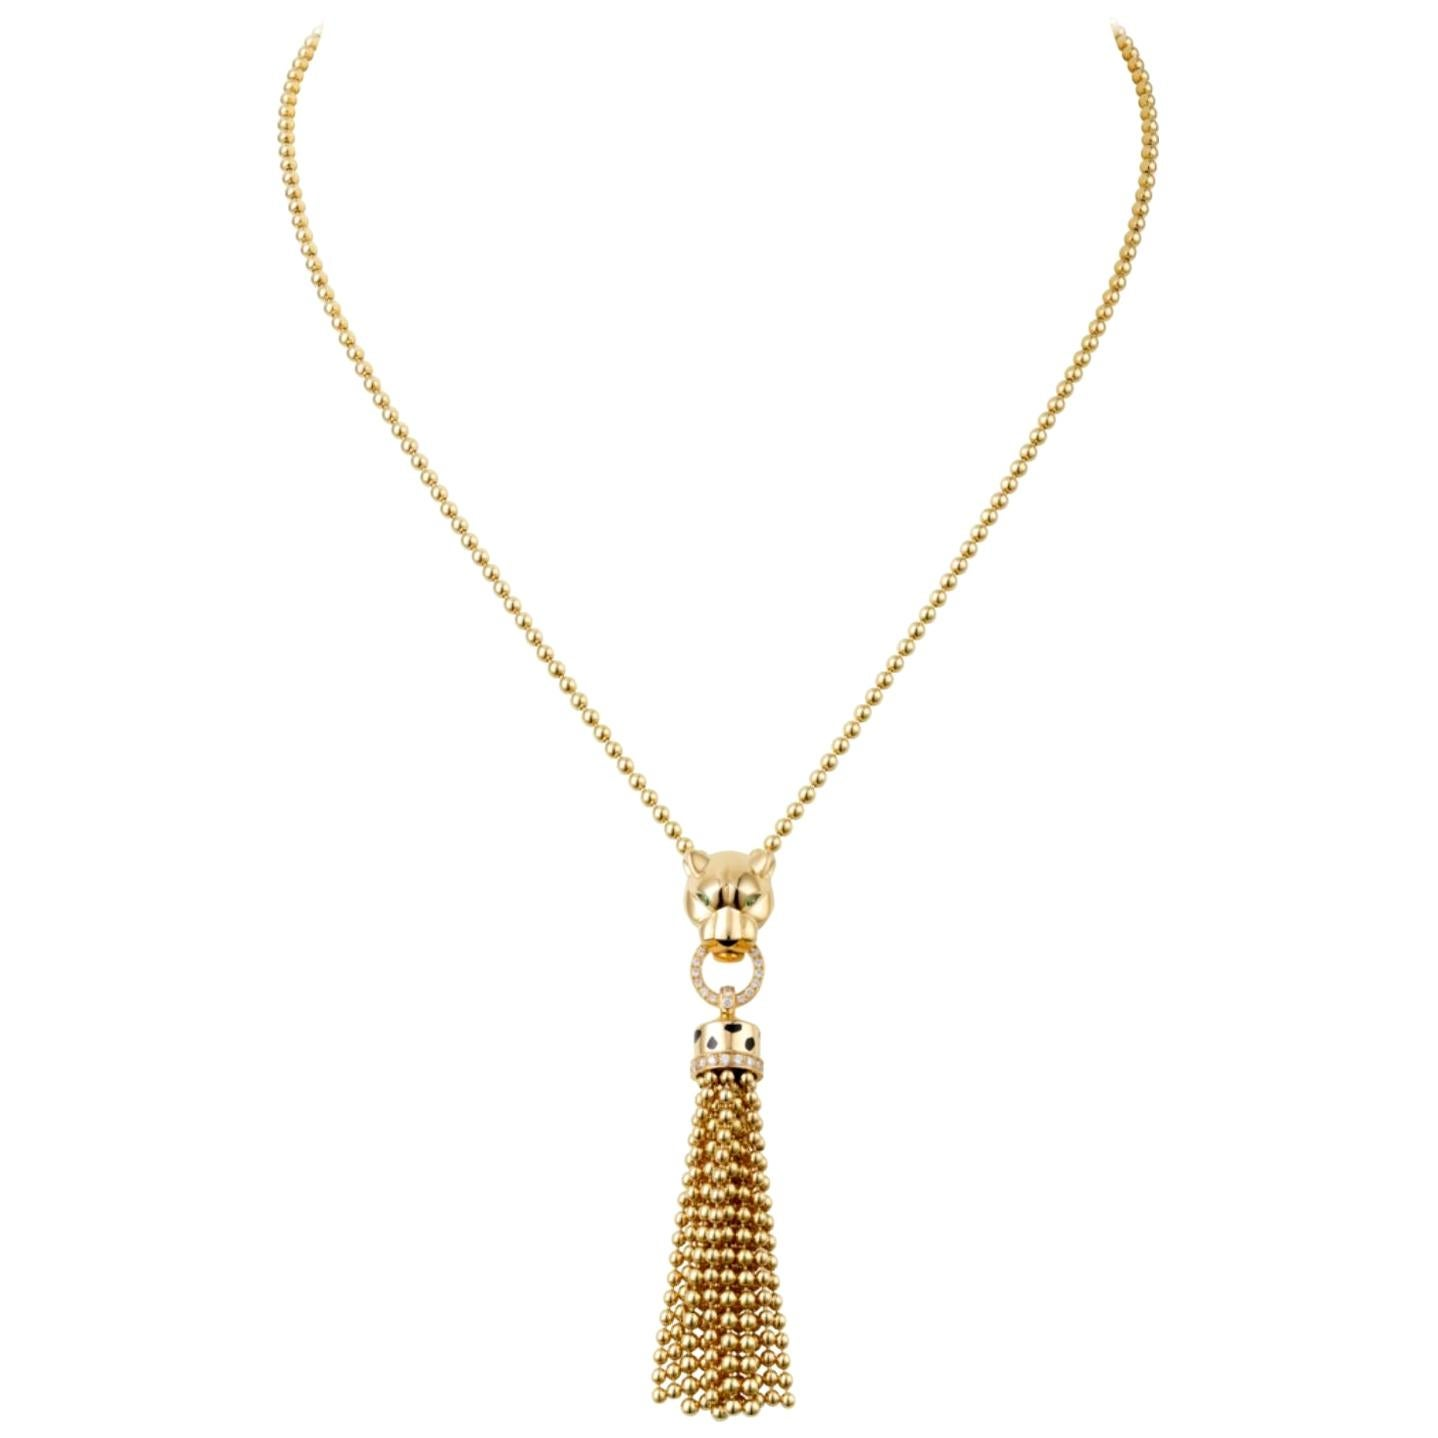 Cartier Contemporary Panthere Panther Diamond Pendant Necklace Yellow Gold 2000s